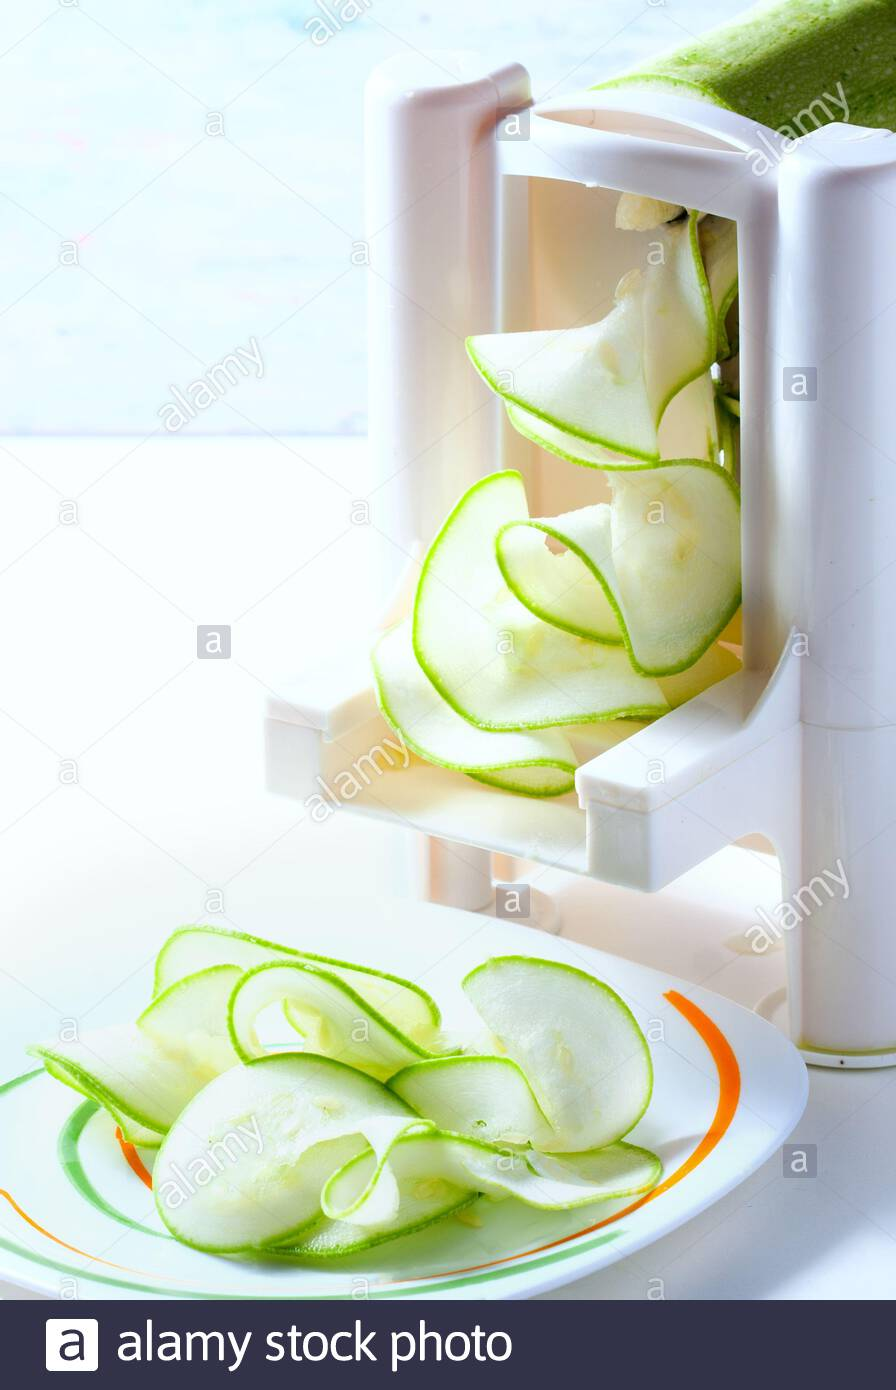 Making zucchini noodles using spiralizer. Selective focus. Stock Photo